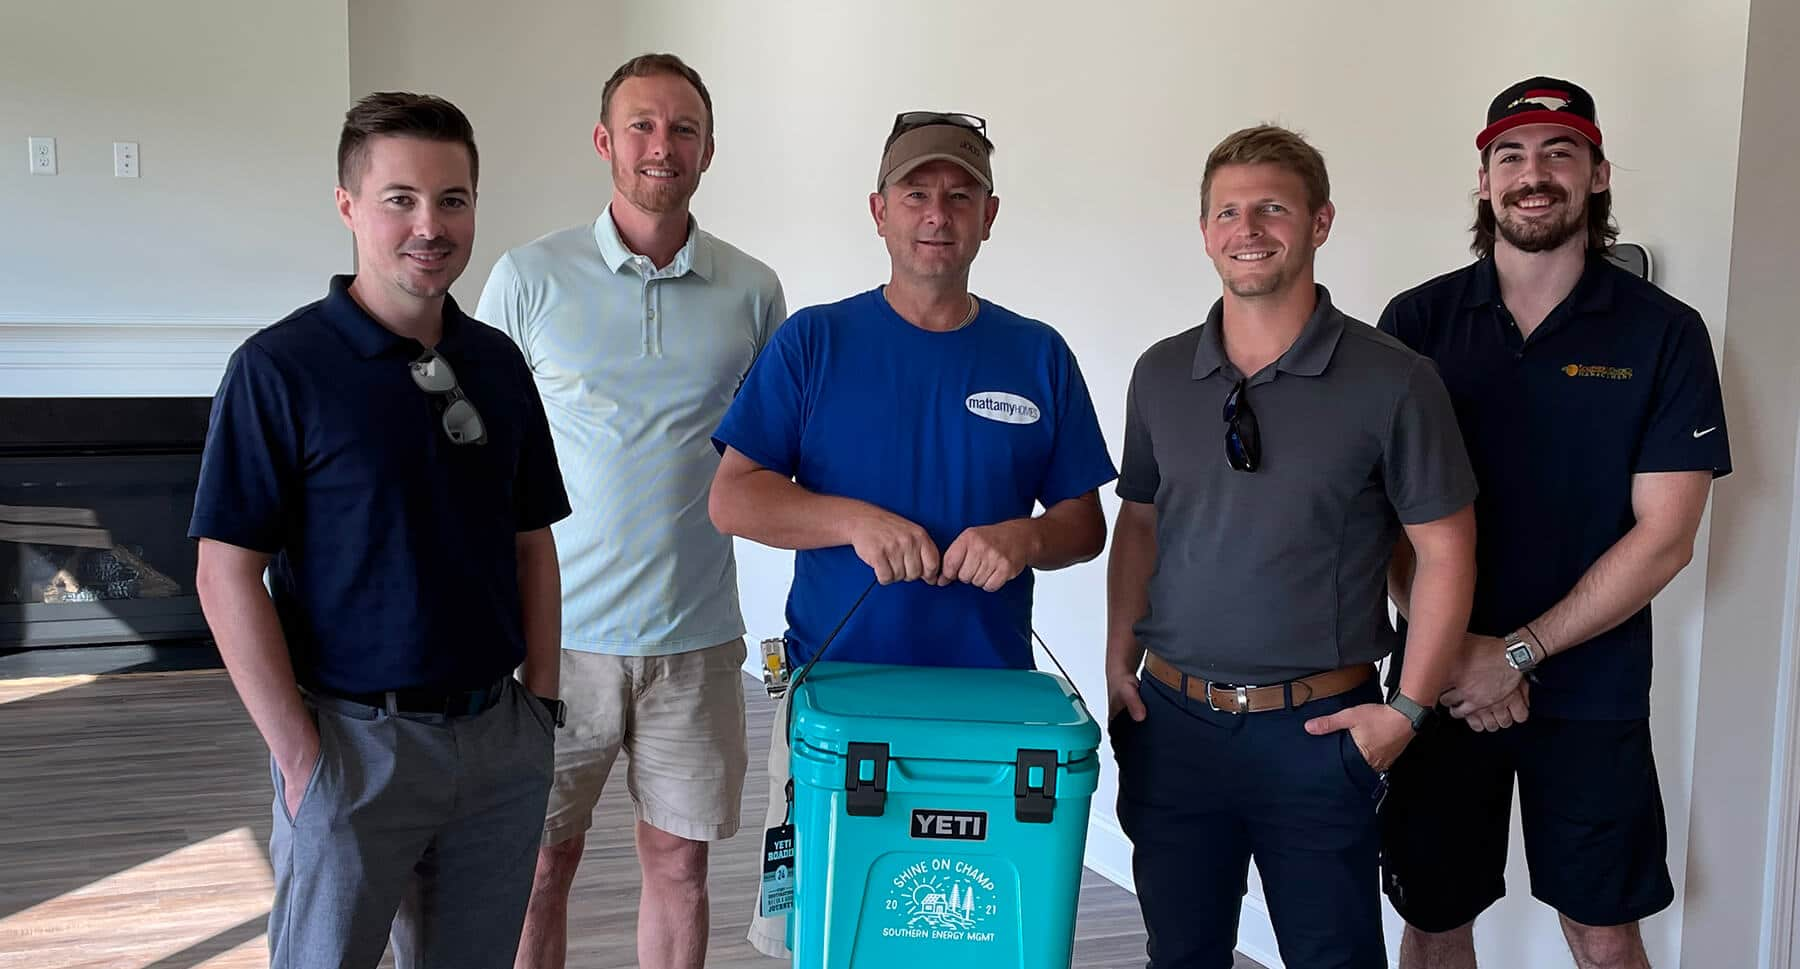 Rick and team from Mattamy Homes with Taylor and Noah from Southern Energy Management during the presentation of the Shine Champ award